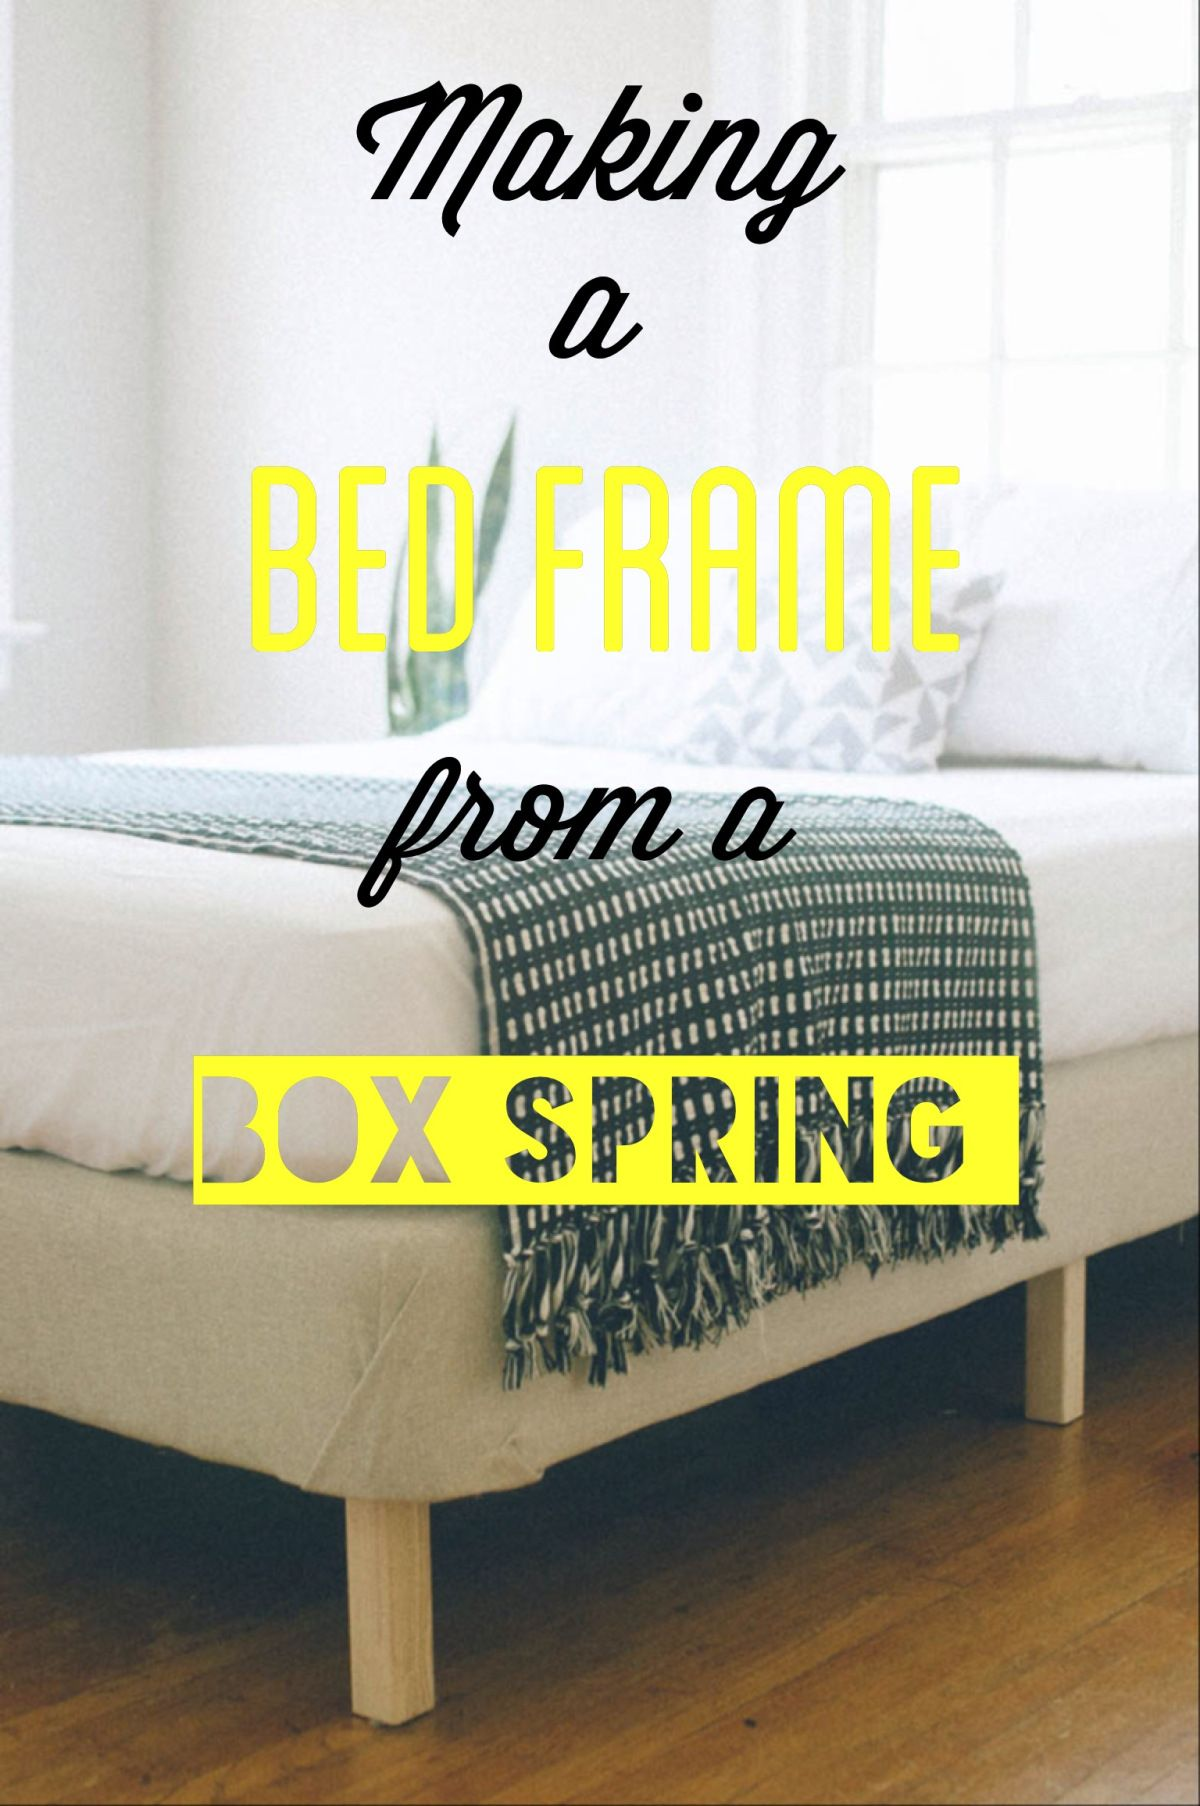 DIY bed frame by adding simple legs and upholstery to box